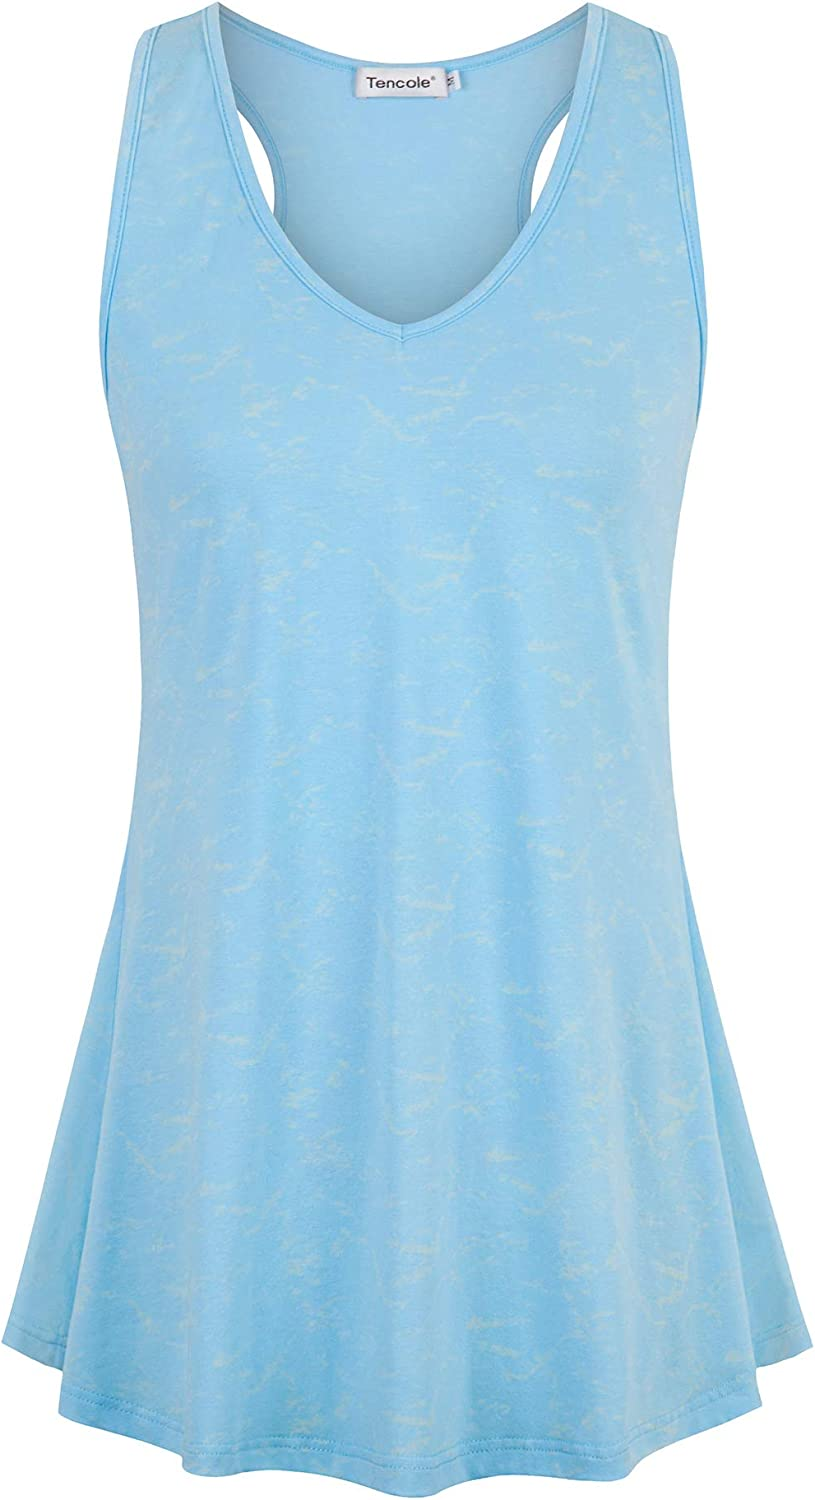 Tencole Womens Summer Shirts with Pattern Sleeveless Casual Racerback Workout Tank Tops